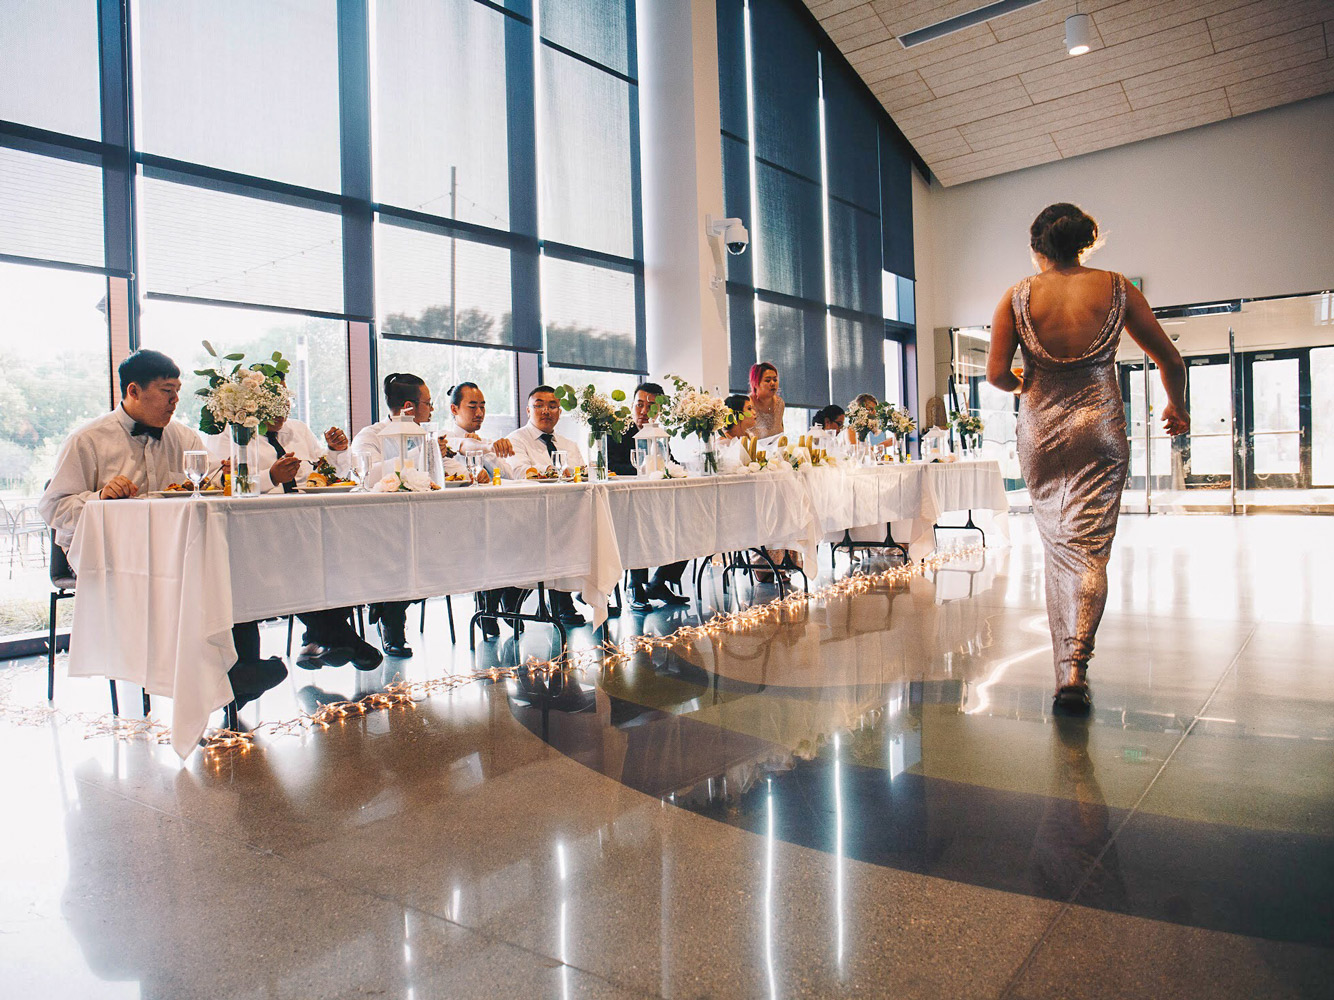 A bridesmaid walks past a wedding party's head table, set with flowers and candles in lanterns